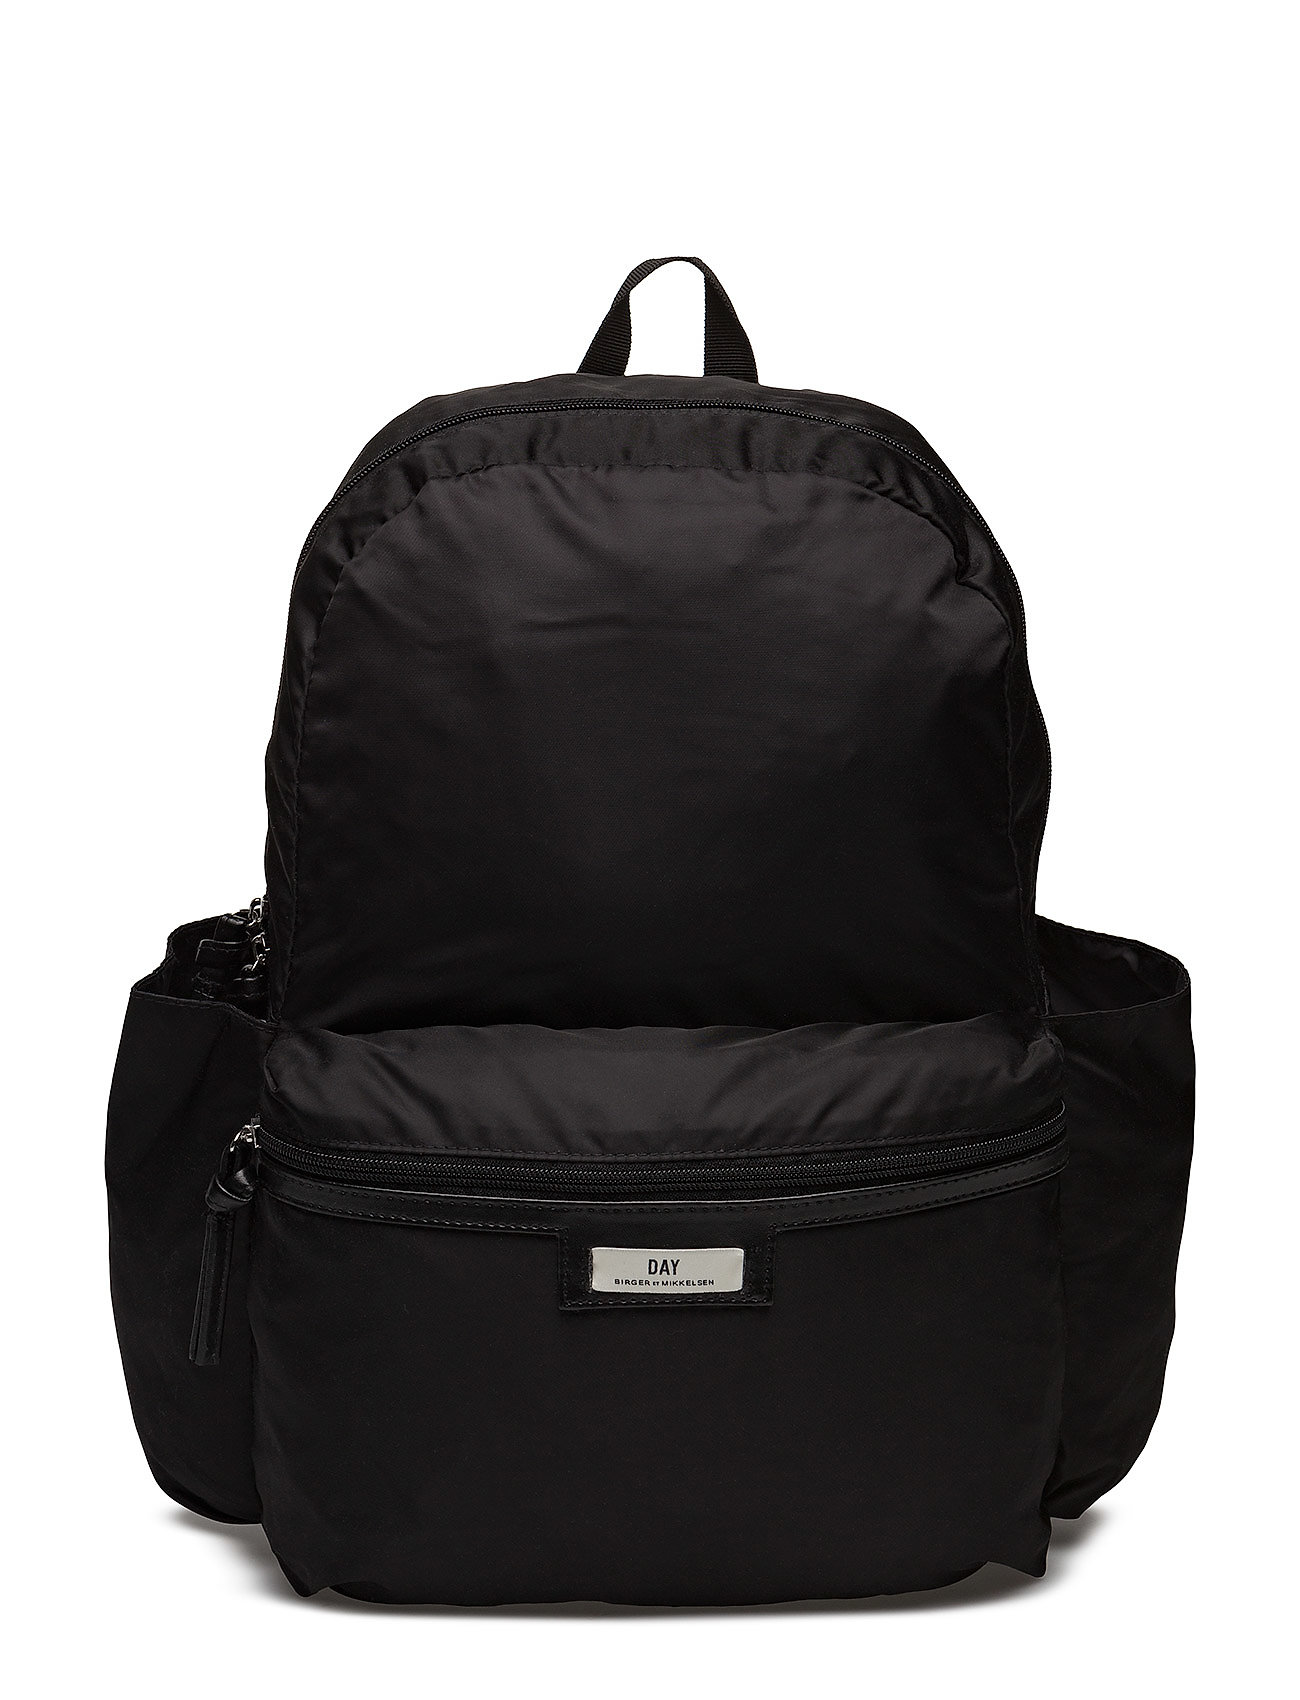 Day Gweneth Classic Pack Bags Backpacks Fashion Backpacks Sort DAY Et